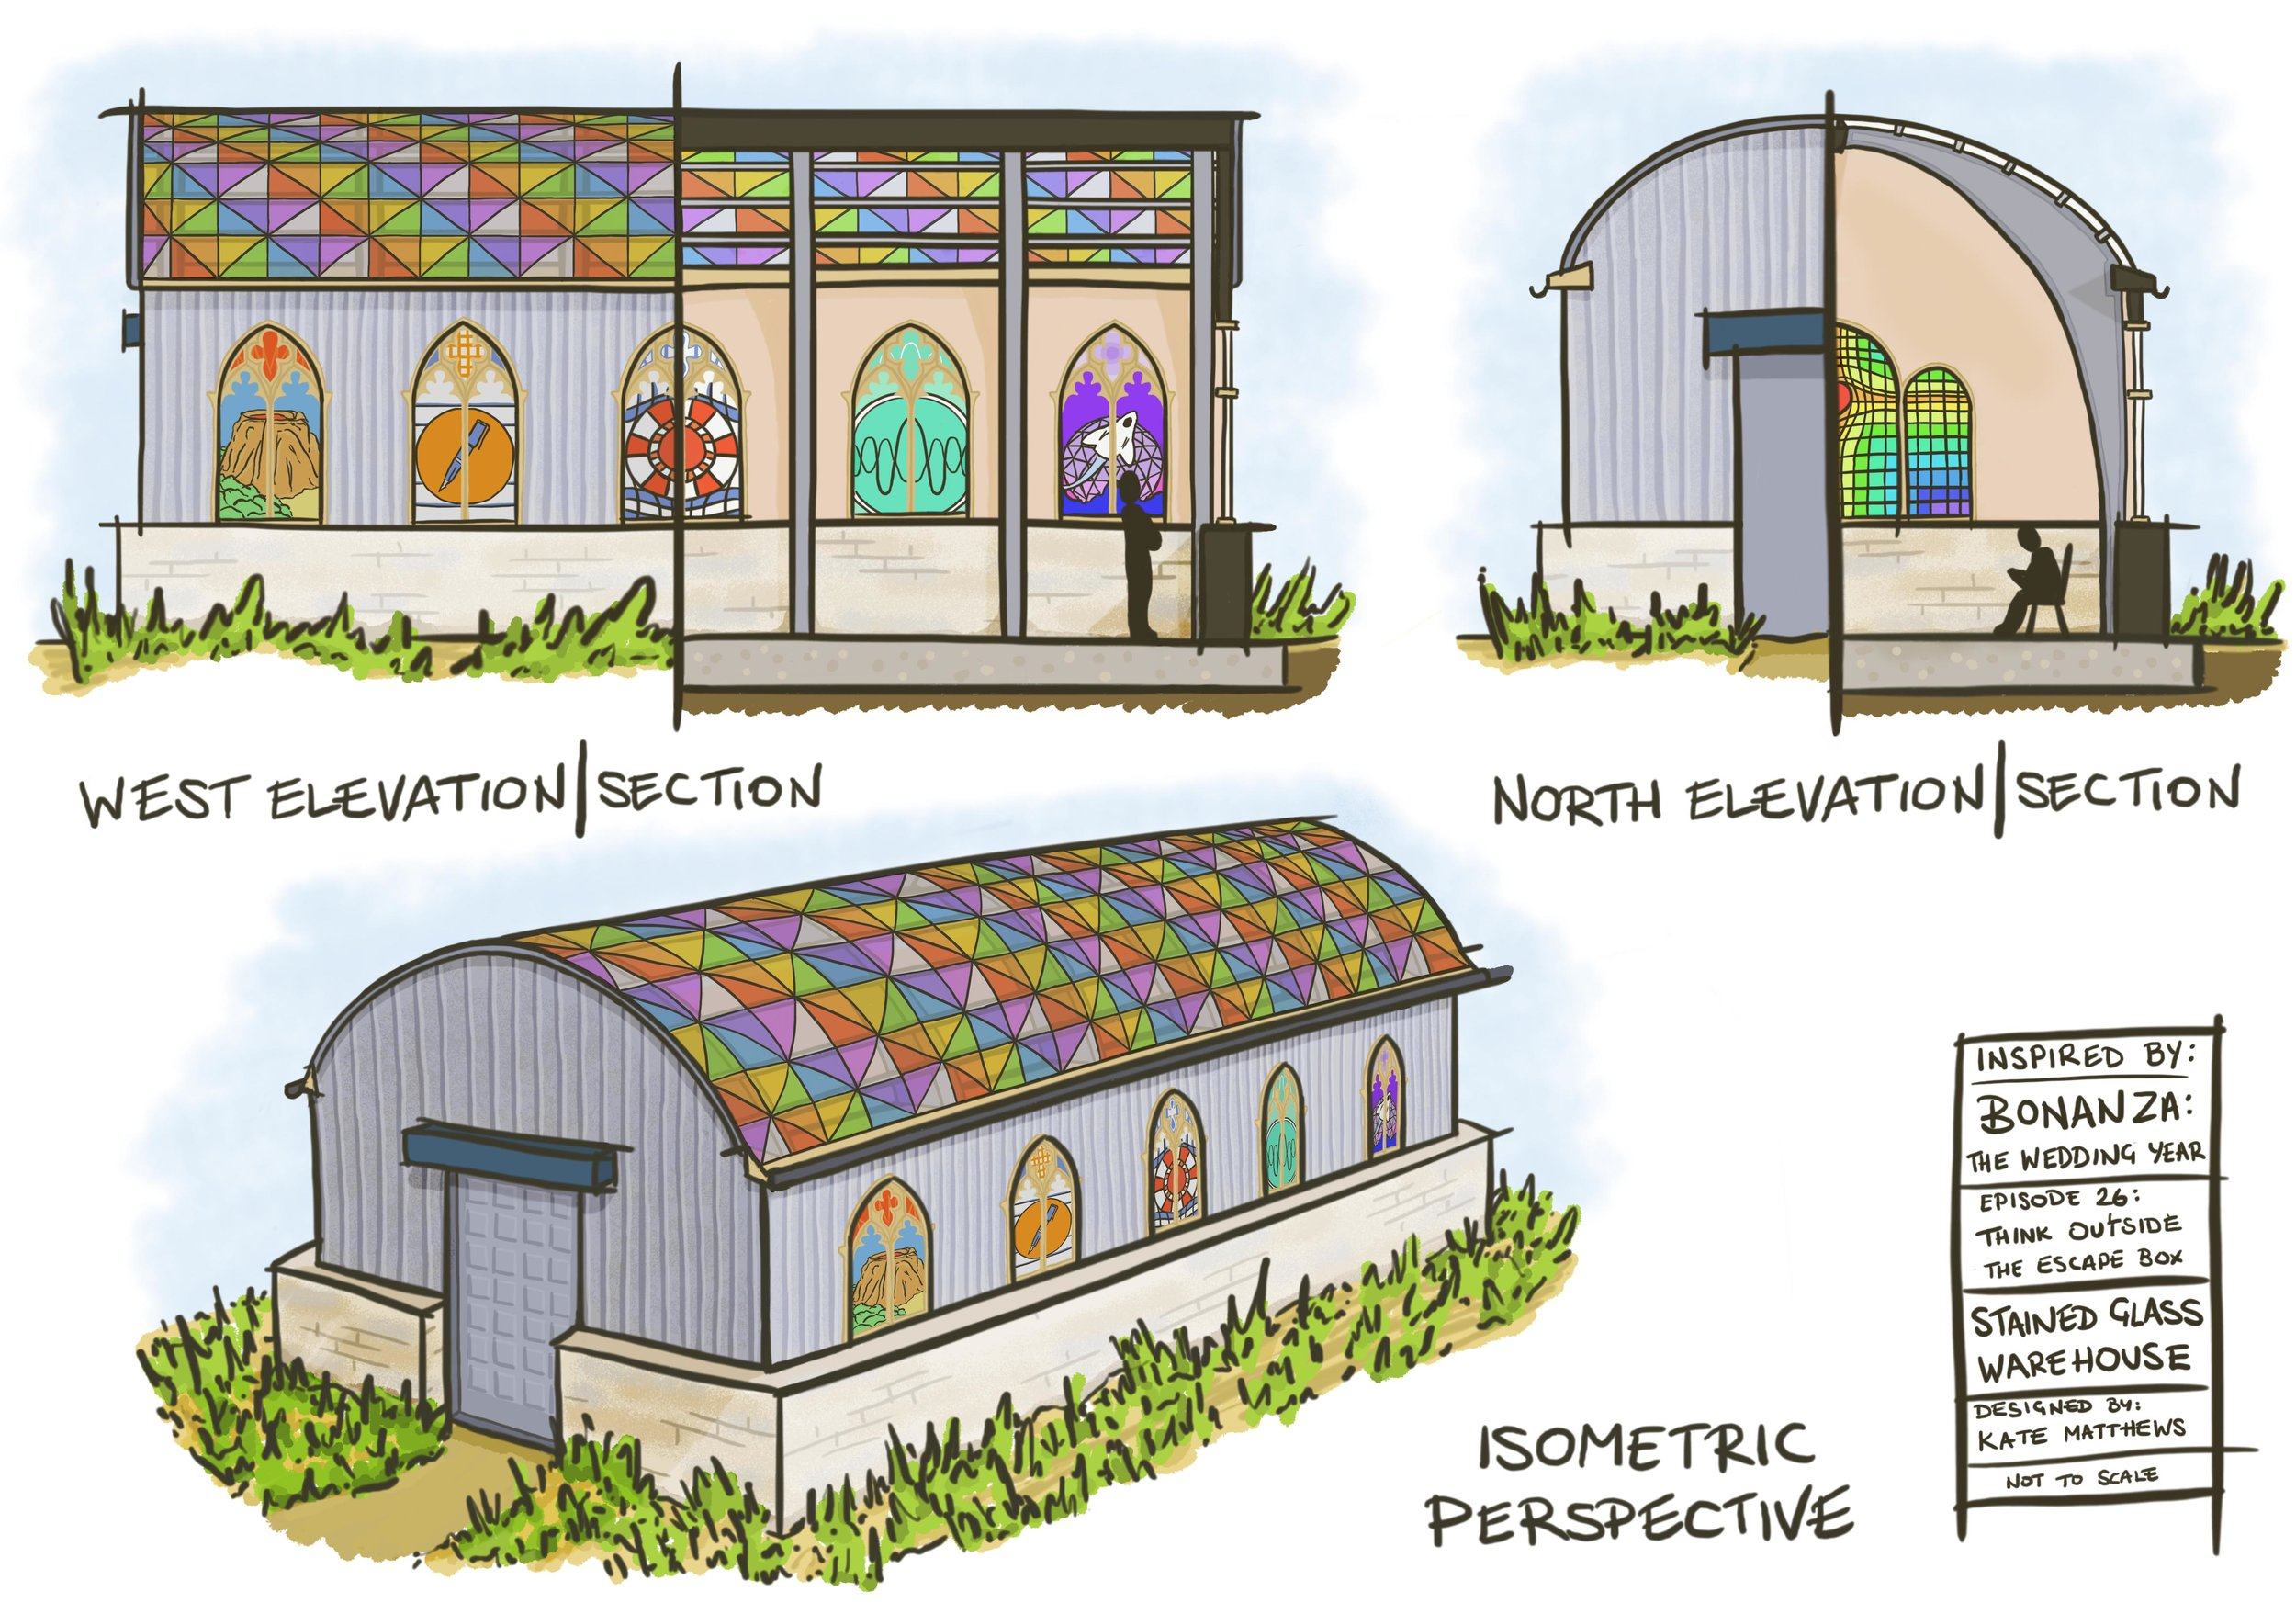 stained glass warehouse layout v2.jpg